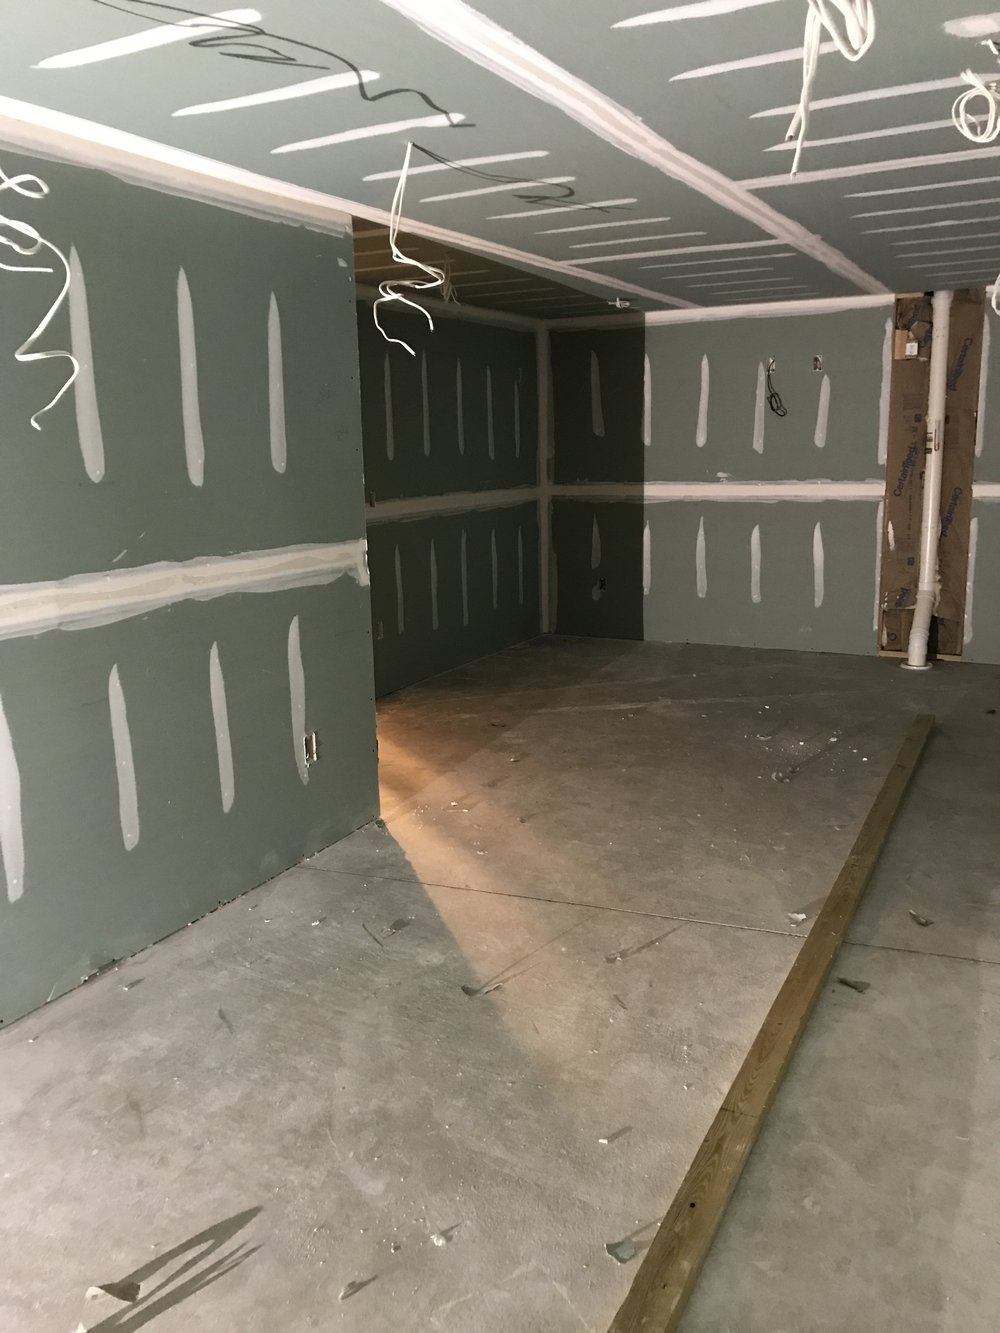 Shaw Remodeling - Progress photo - Drywall and taping in basement finish (2).JPG